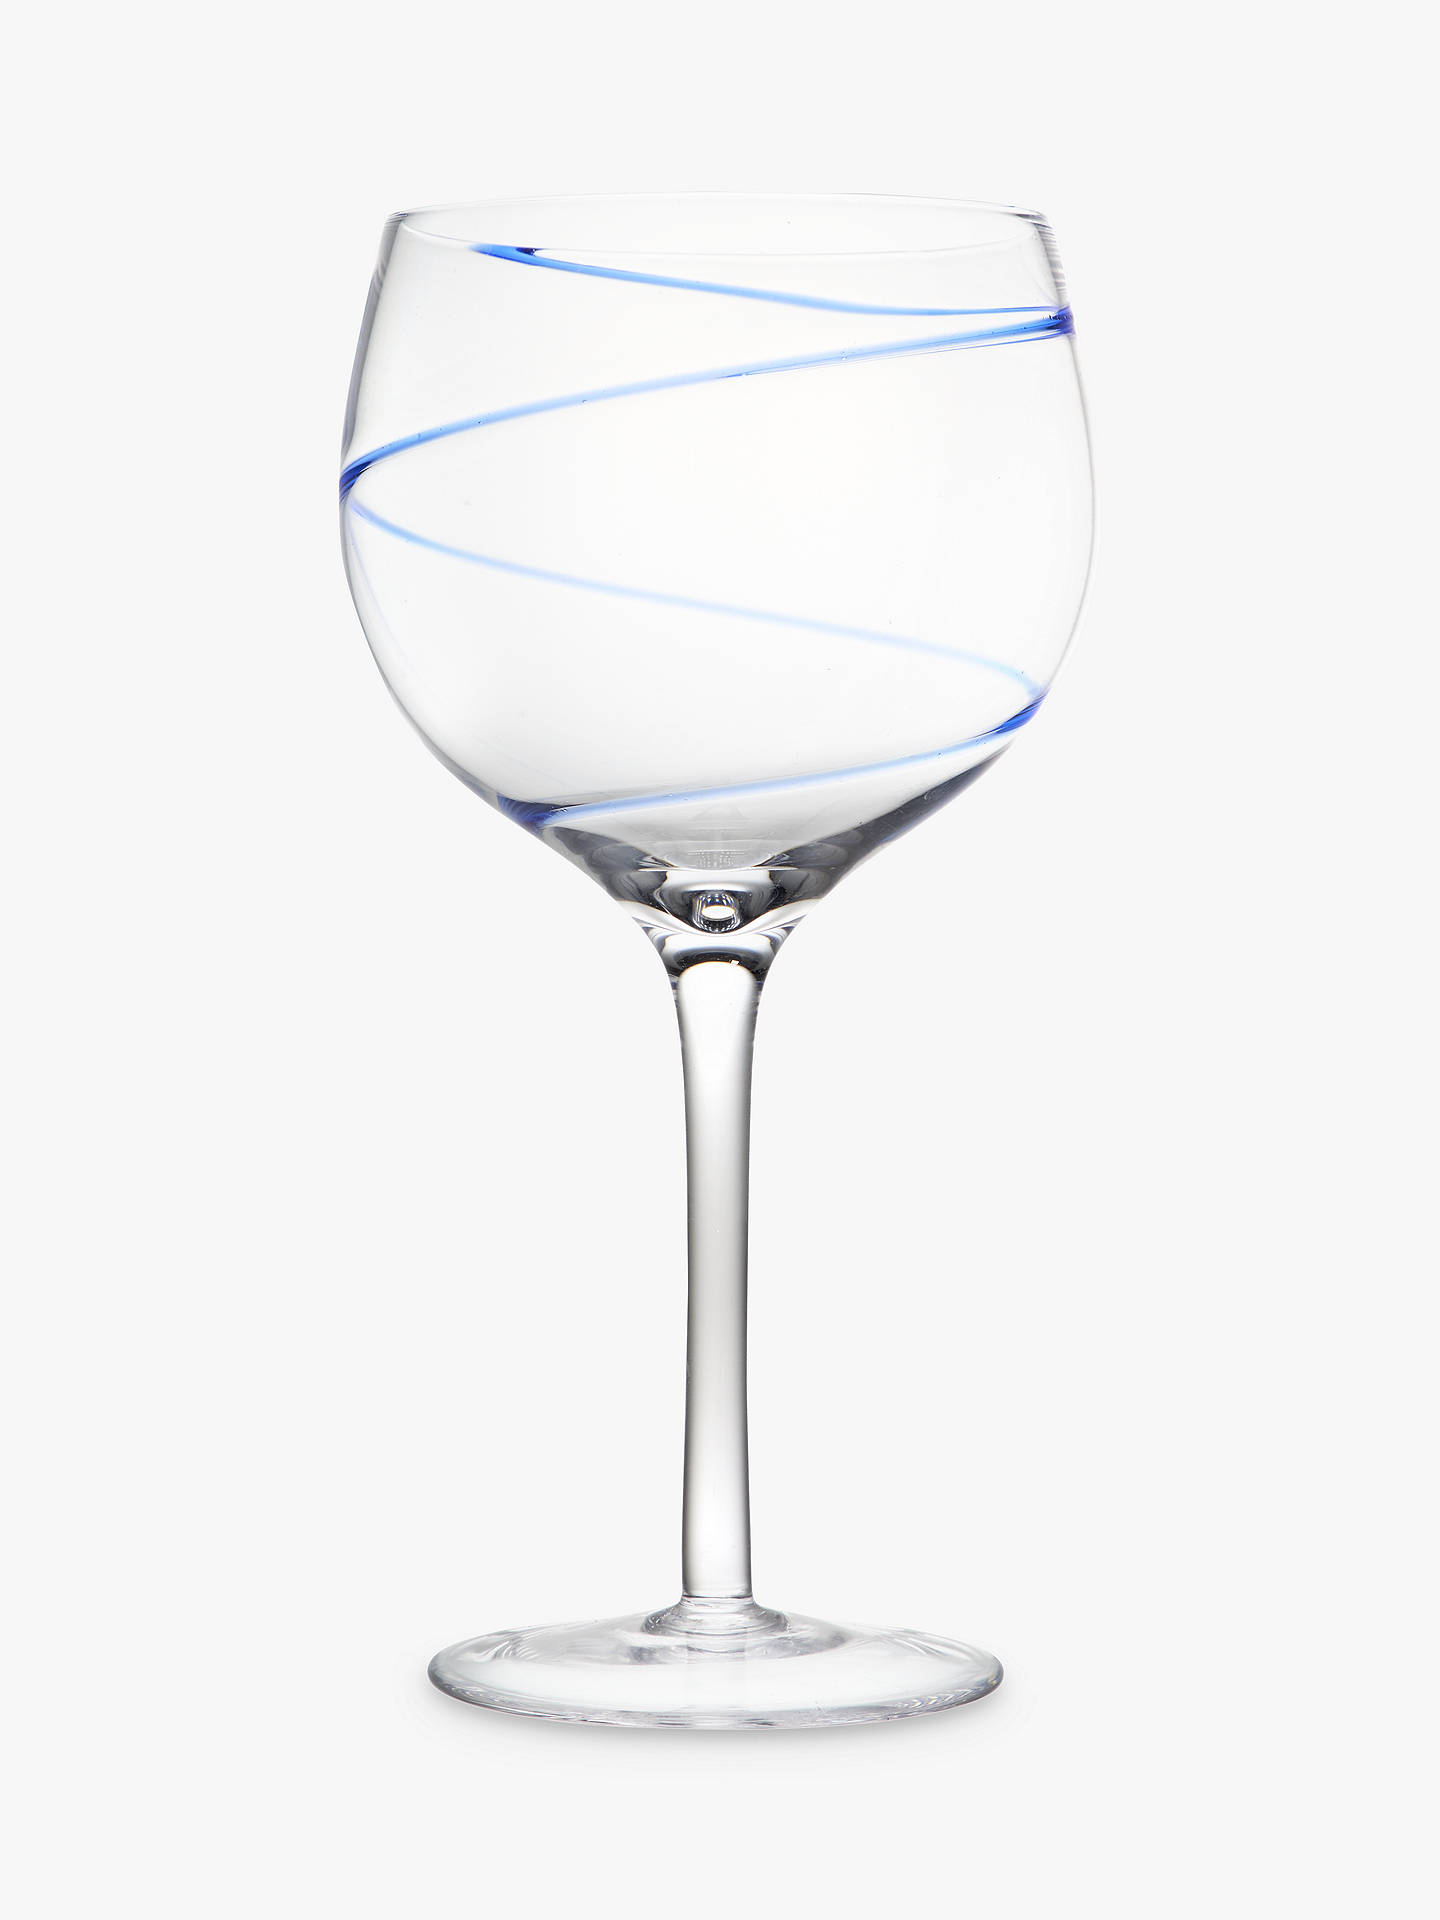 BuyJohn Lewis & Partners Coastal Gin Cocktail Glasses, Assorted, 650ml, Set of 4 Online at johnlewis.com